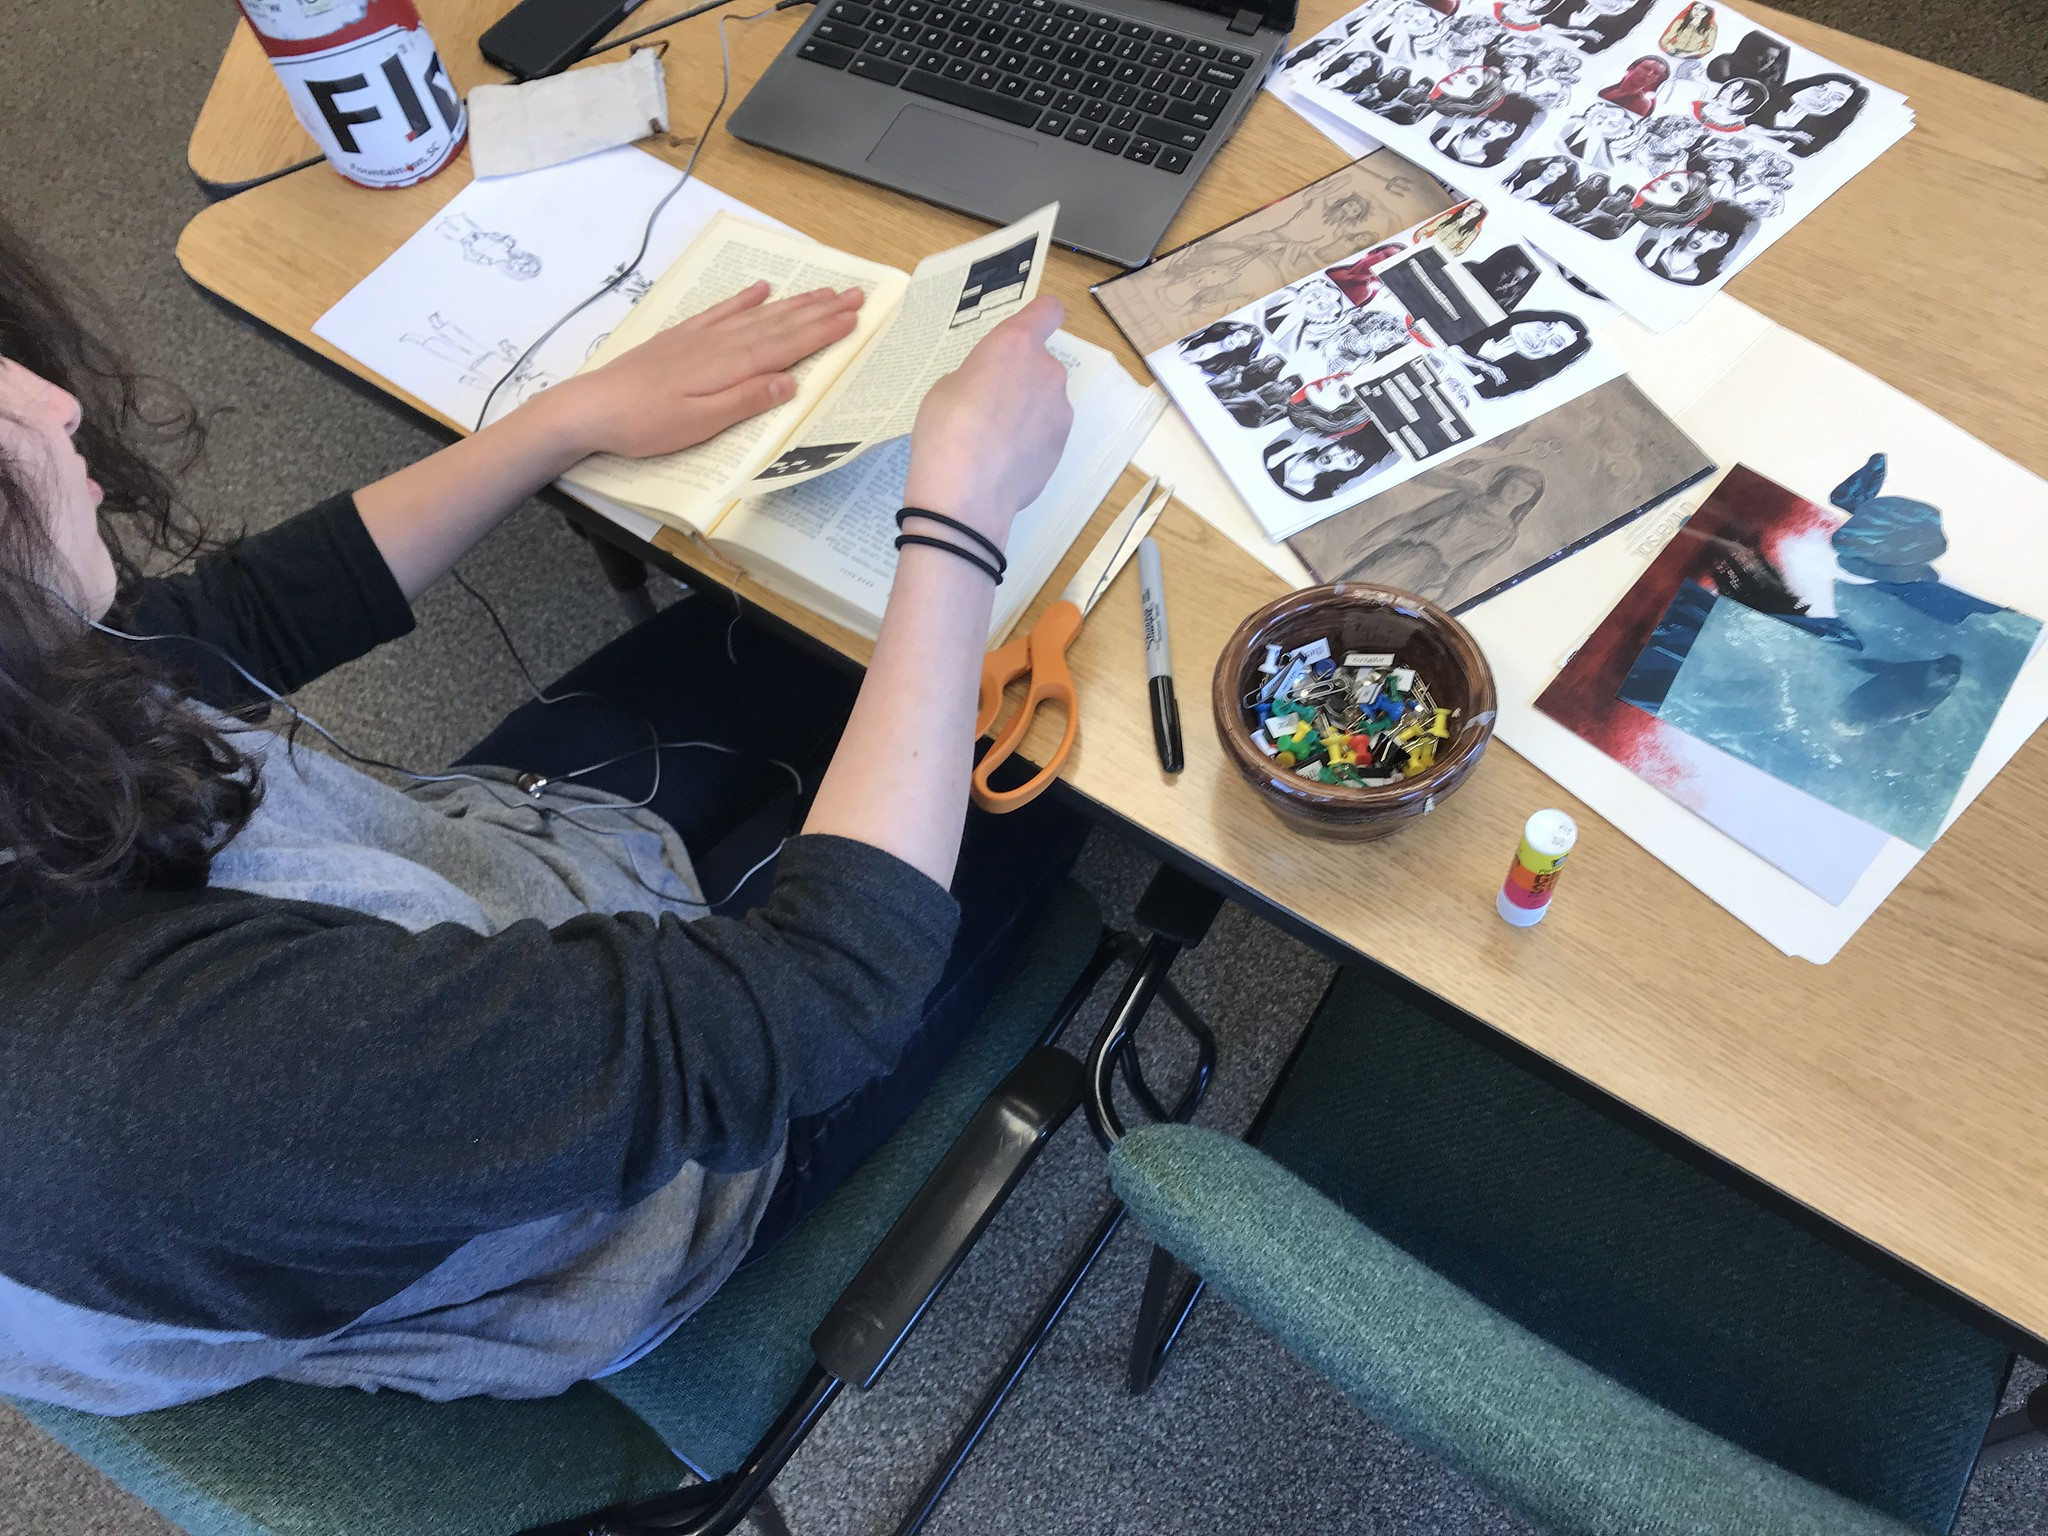 Student Creating Zines at Rock Point School